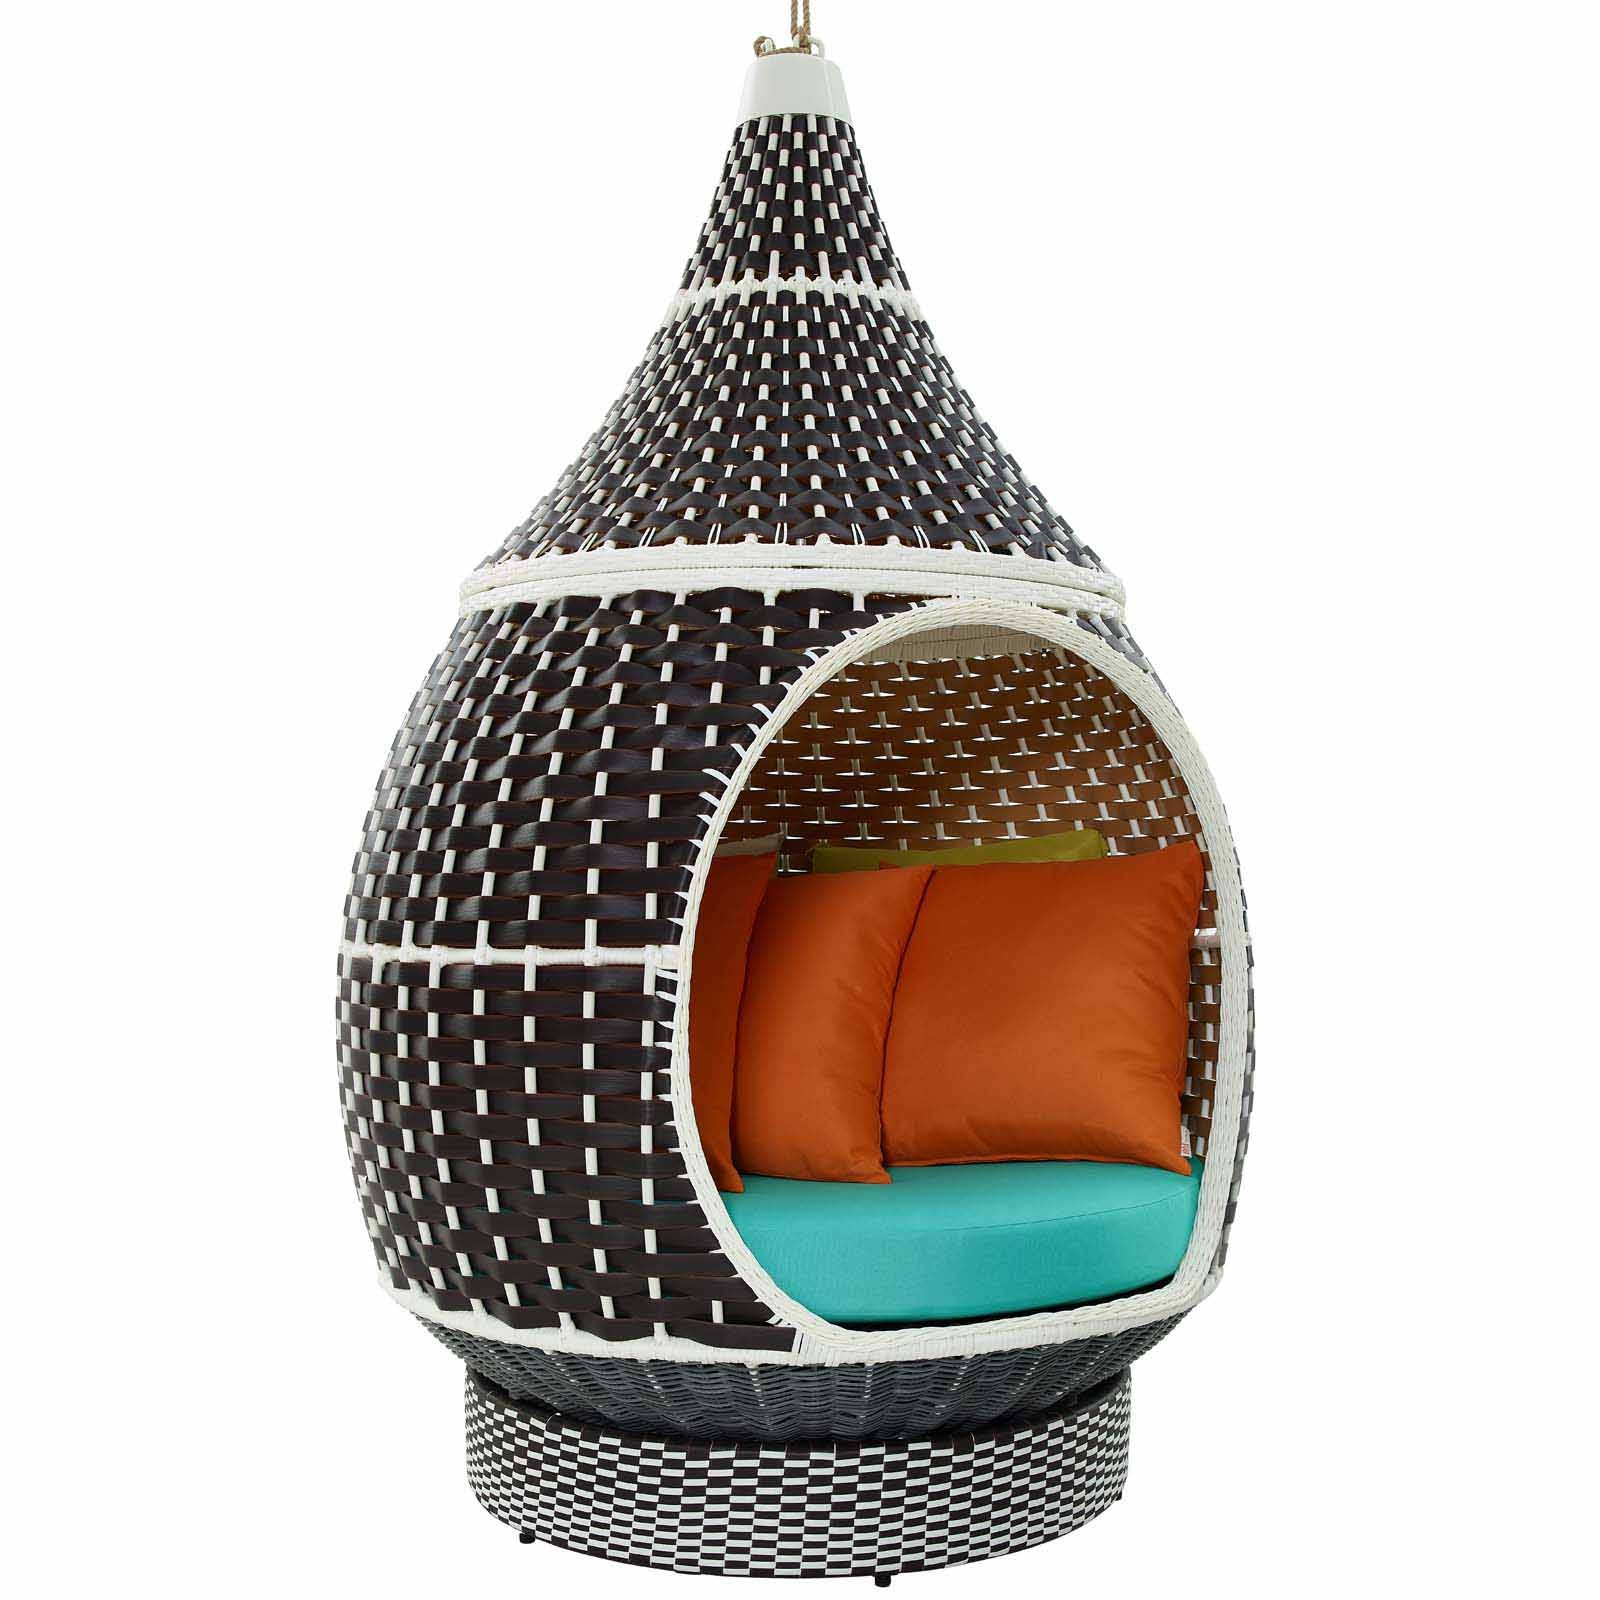 Palace Outdoor Patio Wicker Rattan Hanging Pod in Brown Turquoise